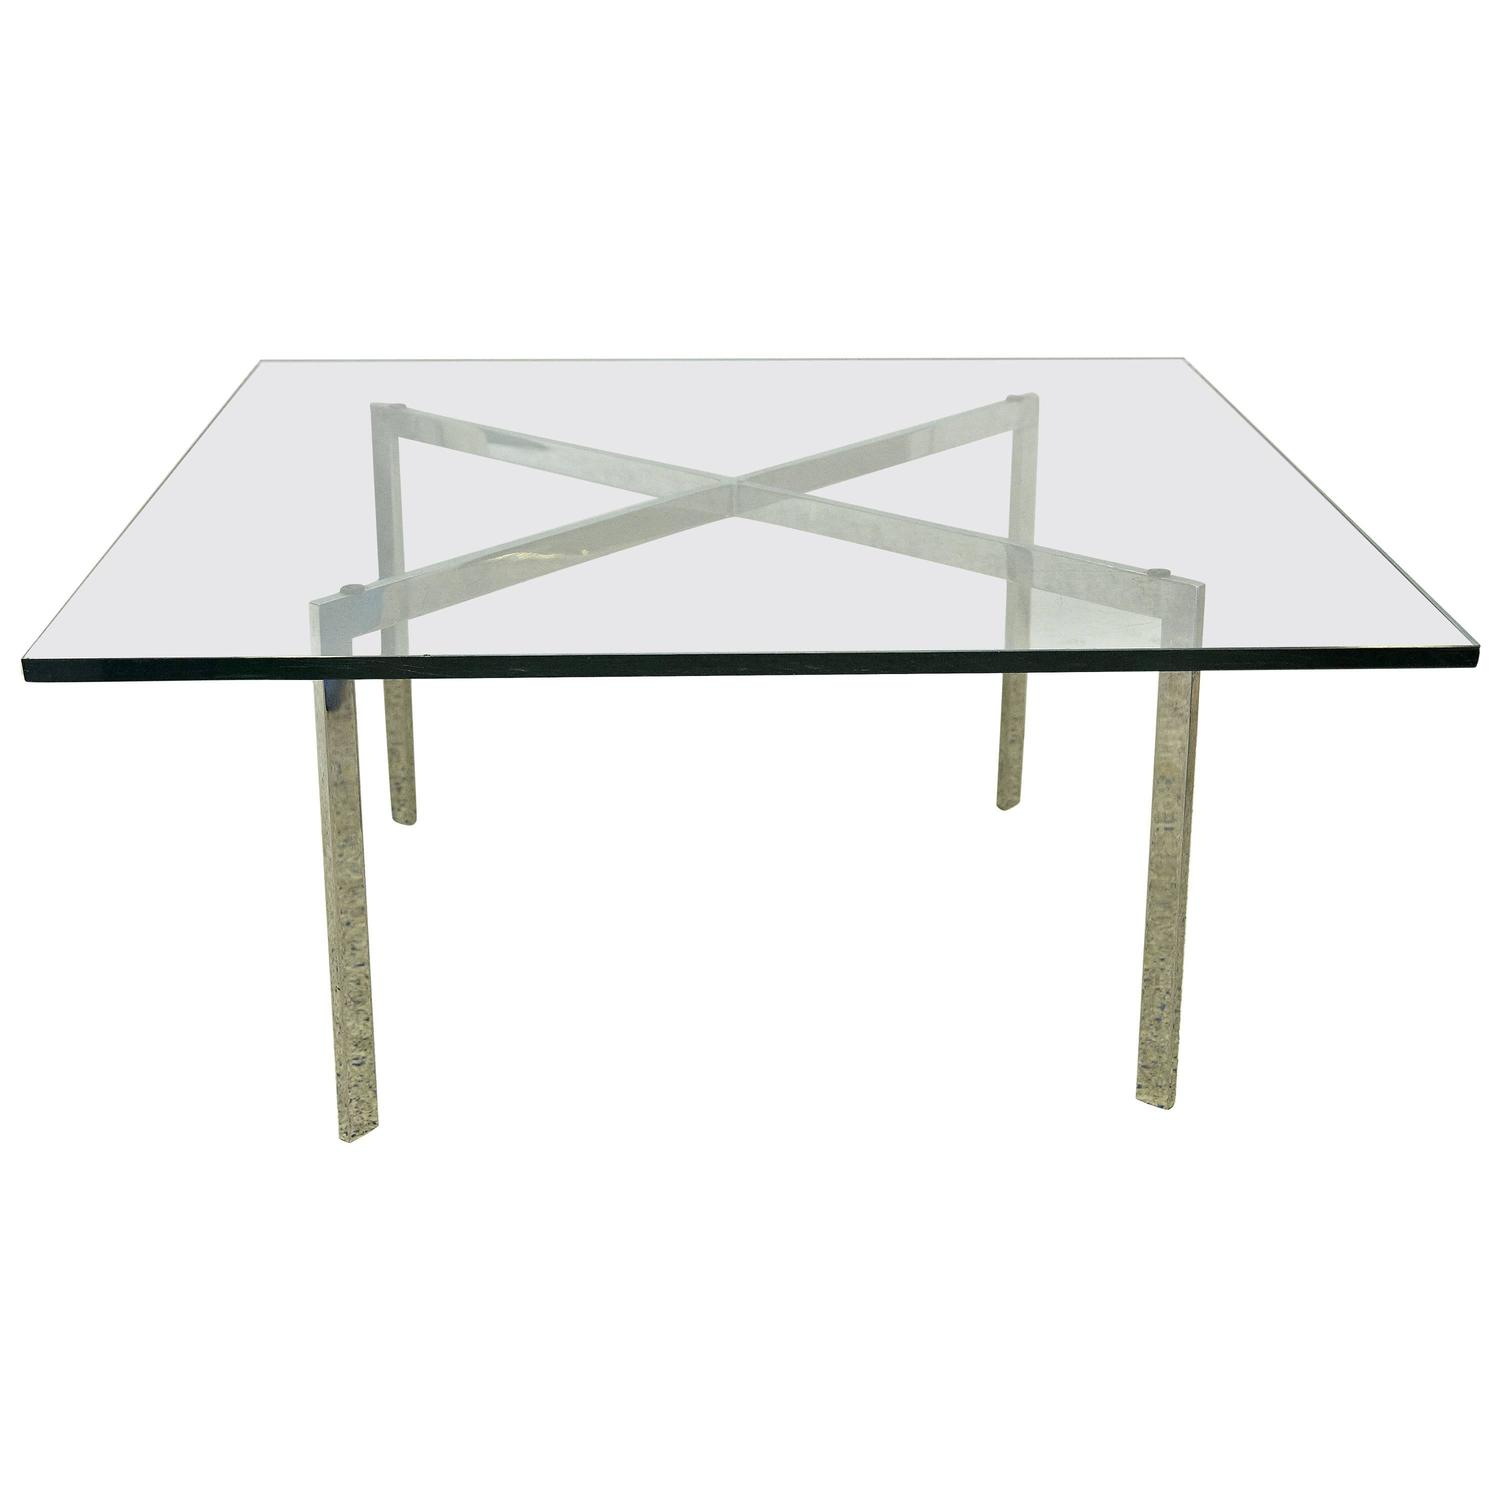 Mies van der rohe barcelona table for knoll for sale at 1stdibs - Barcelona table knoll ...